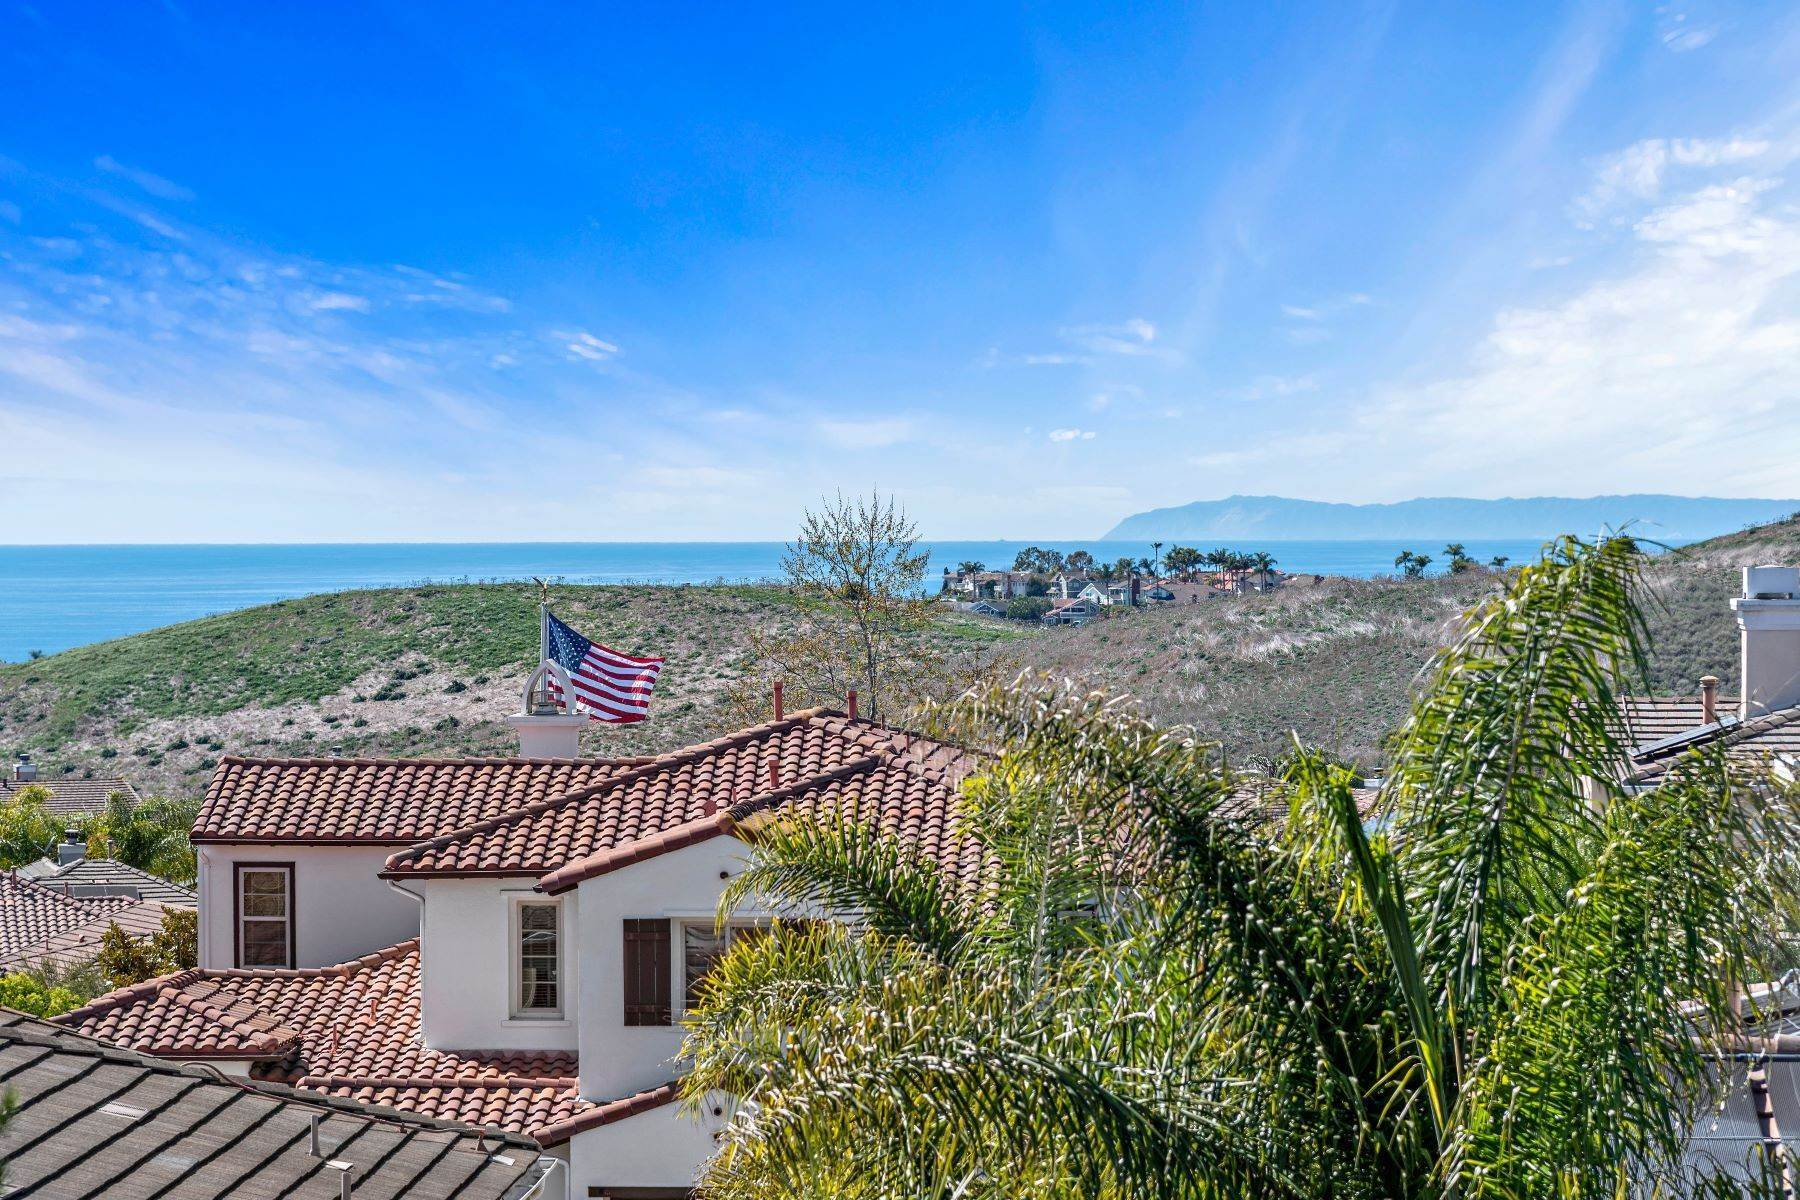 Single Family Homes for Sale at 2612 Canto Rompeolas, San Clemente, CA 92673 2612 Canto Rompeolas San Clemente, California 92673 United States